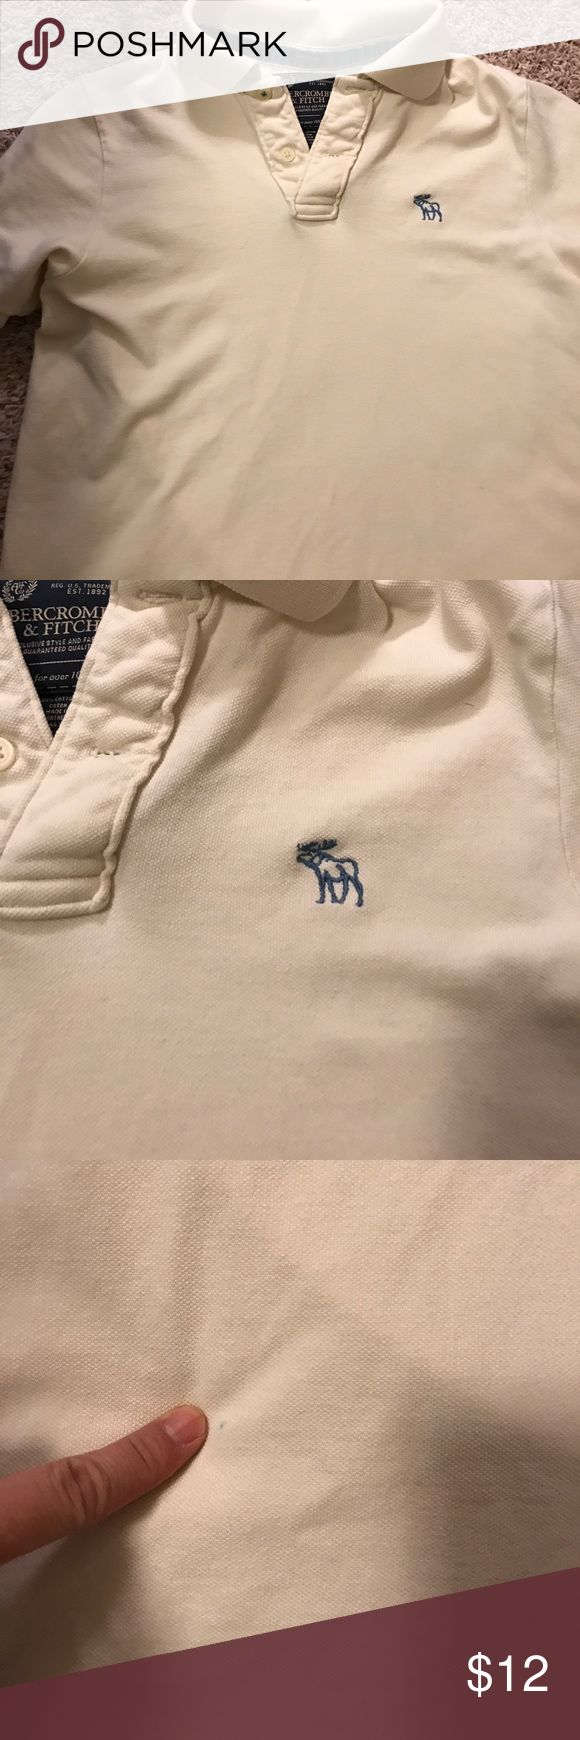 Abercrombie men's polo size small excellent Men's size small polo. A few small marks from normal wear. I tried to show them in the picture they might come out. Abercrombie & Fitch Shirts Polos